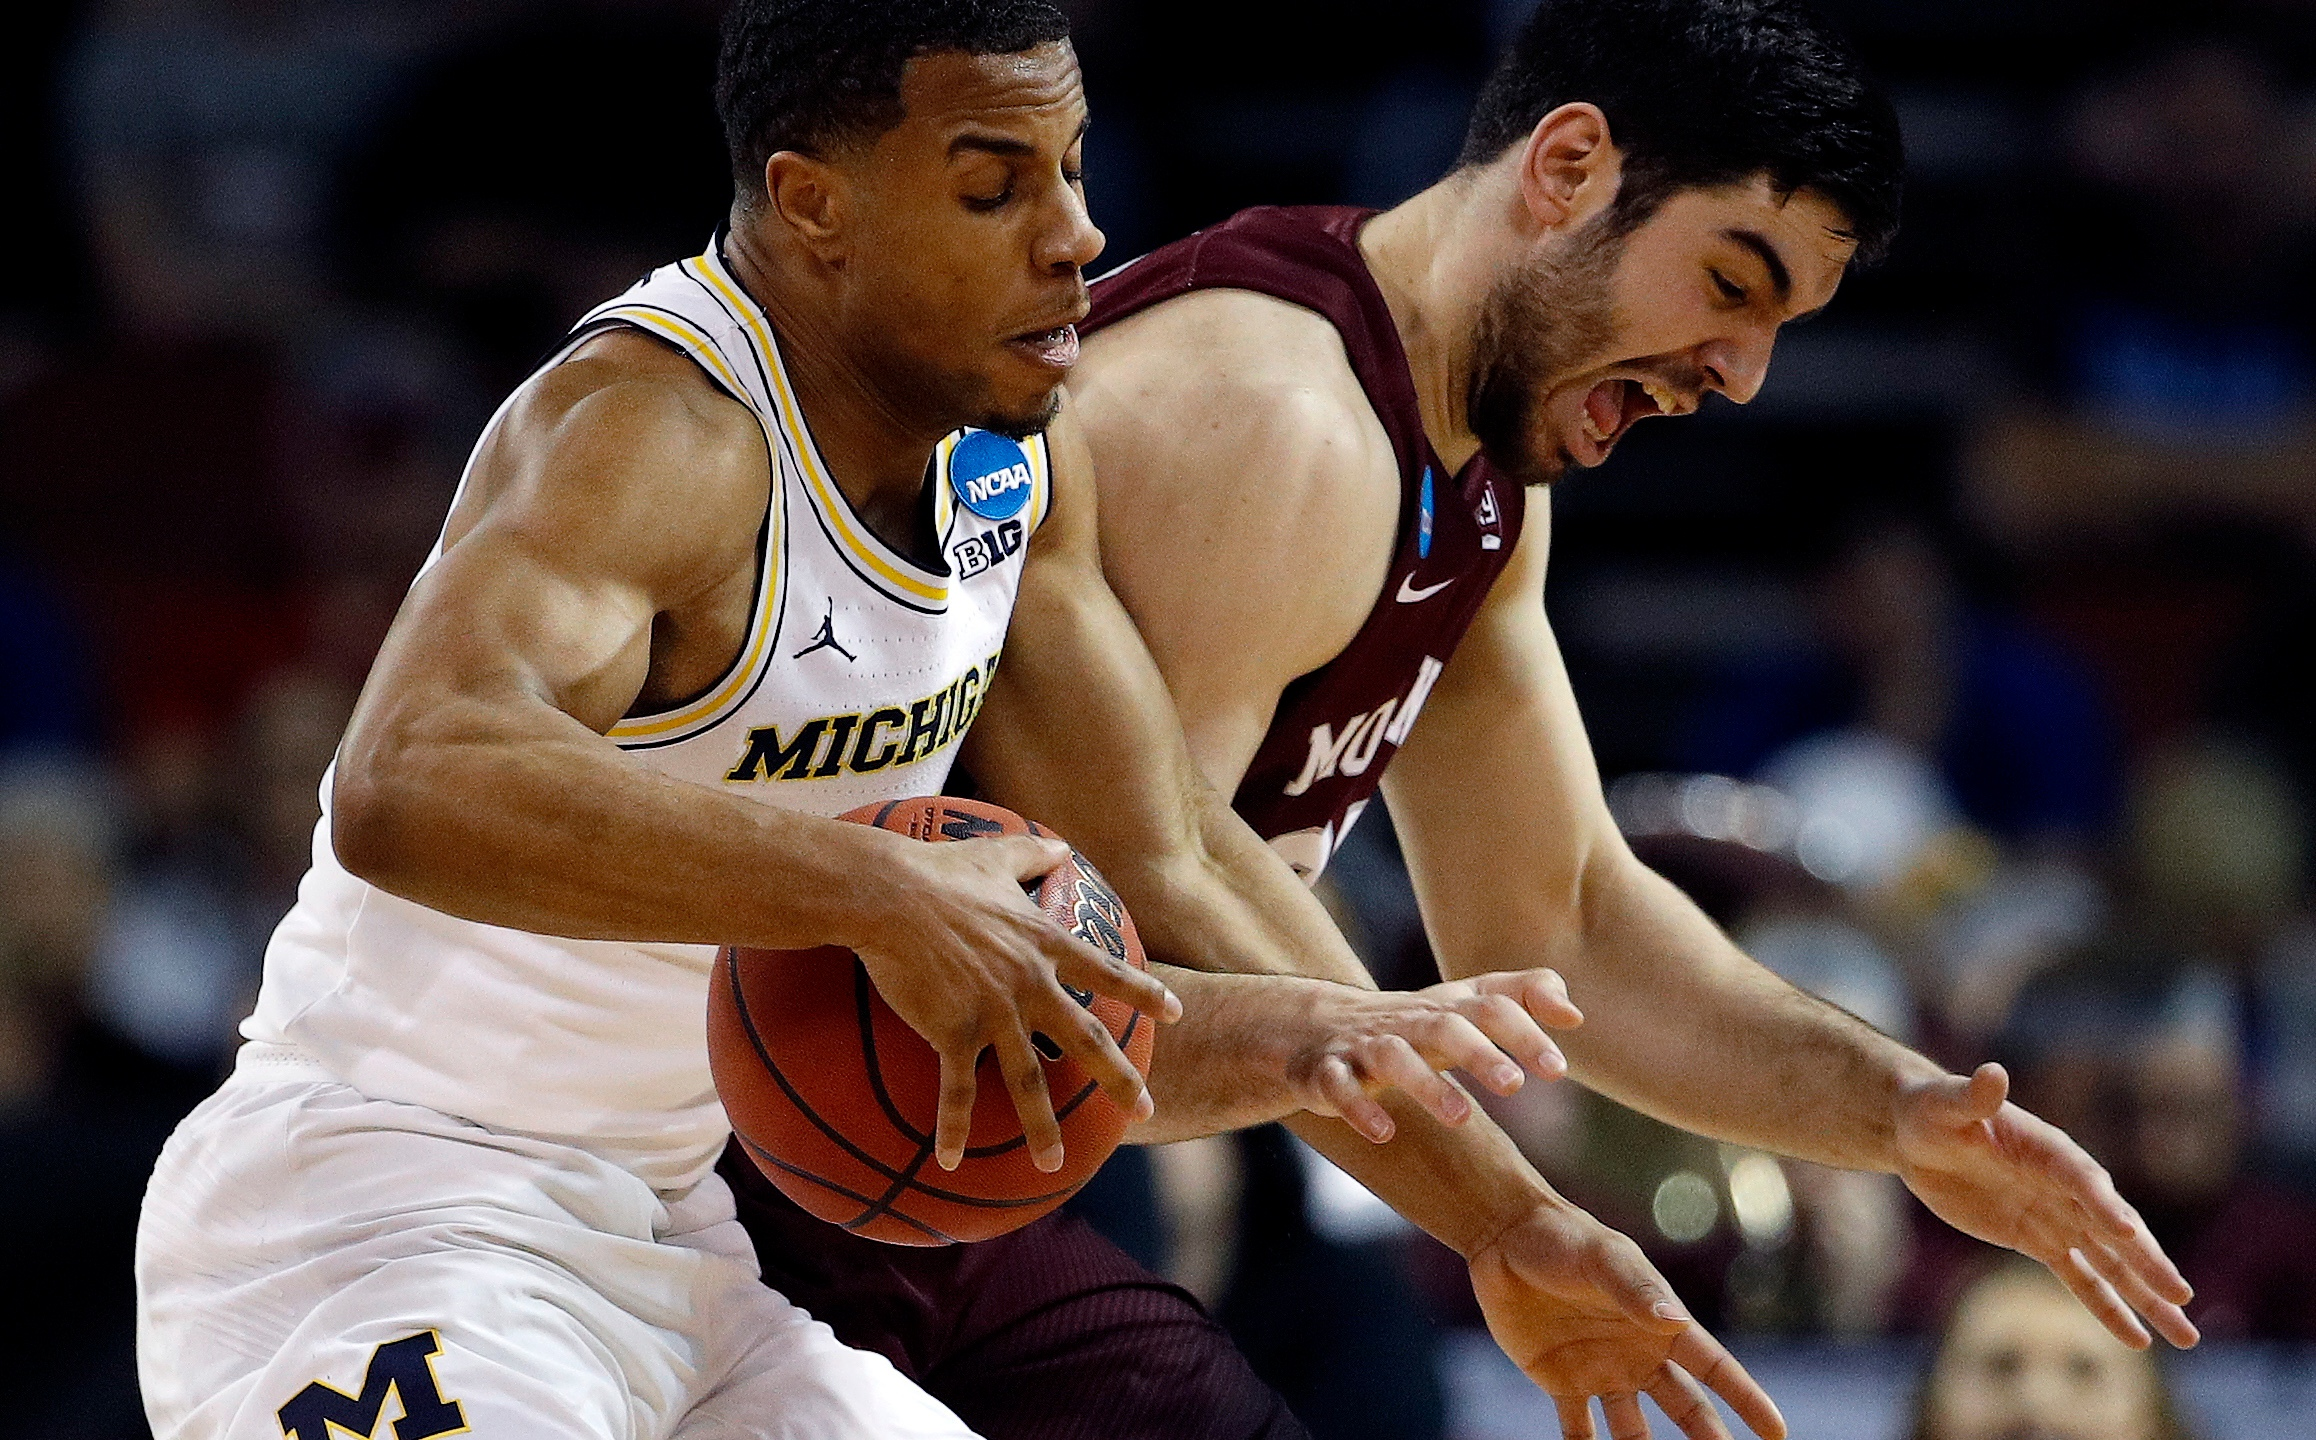 NCAA_Montana_Michigan_Basketball_09900-159532.jpg43815263